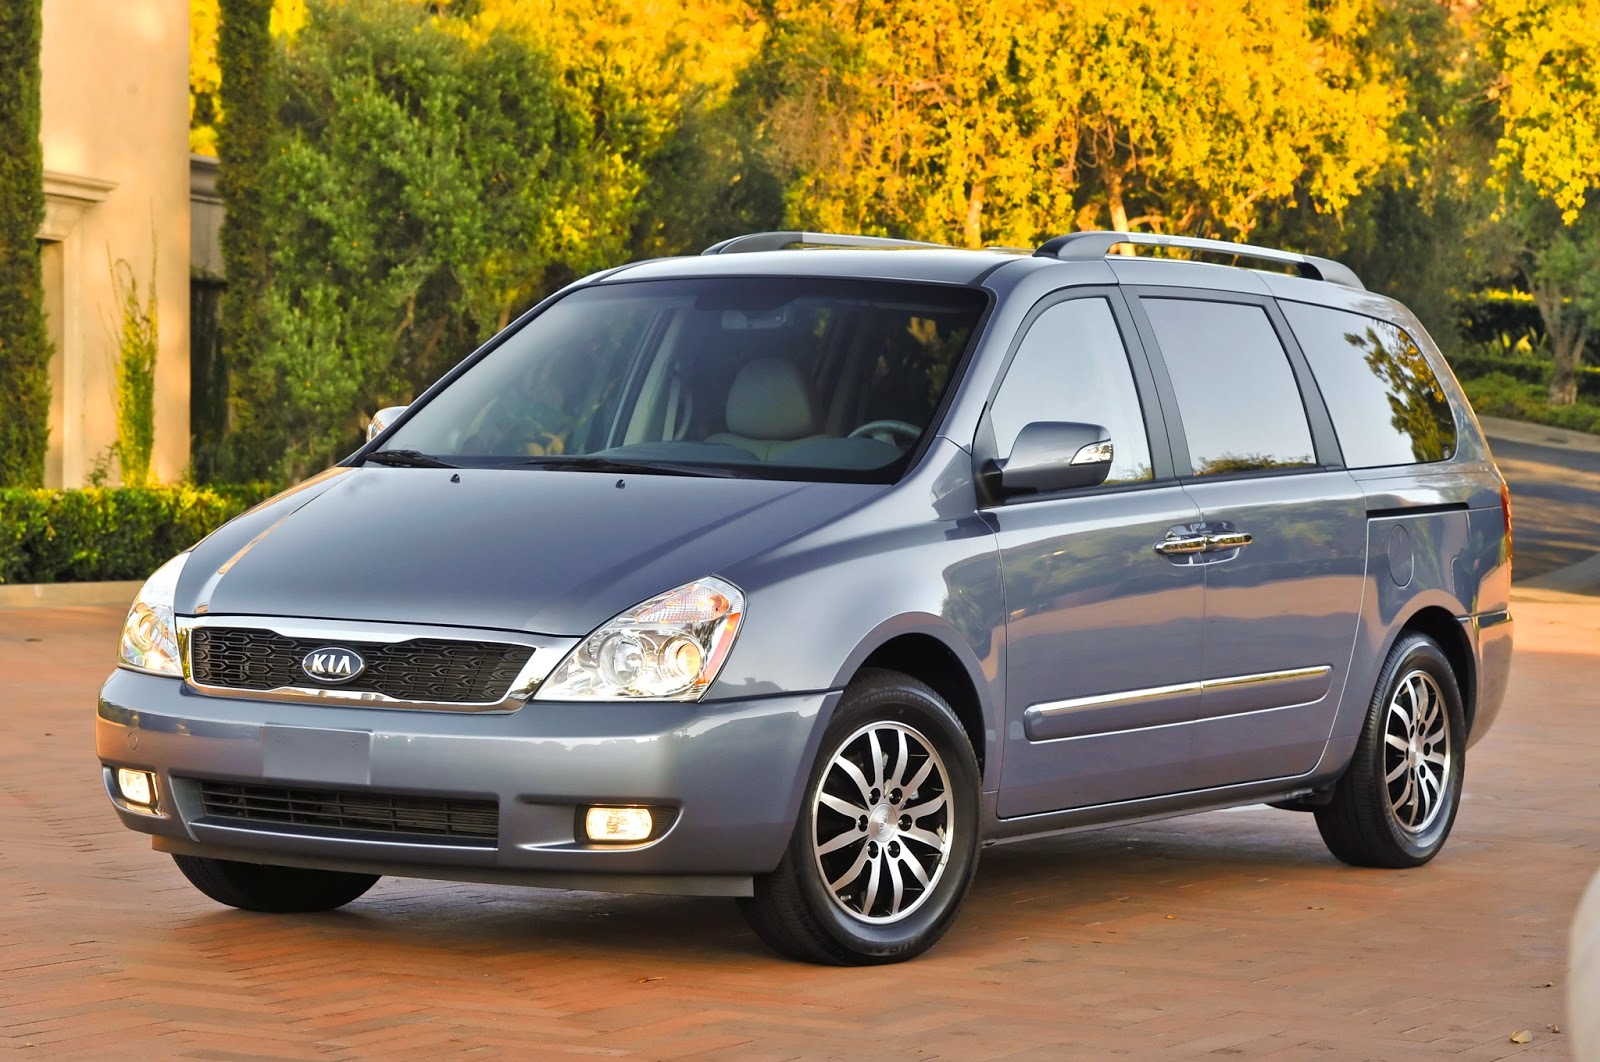 2015 kia sedona price specs and release date. Black Bedroom Furniture Sets. Home Design Ideas